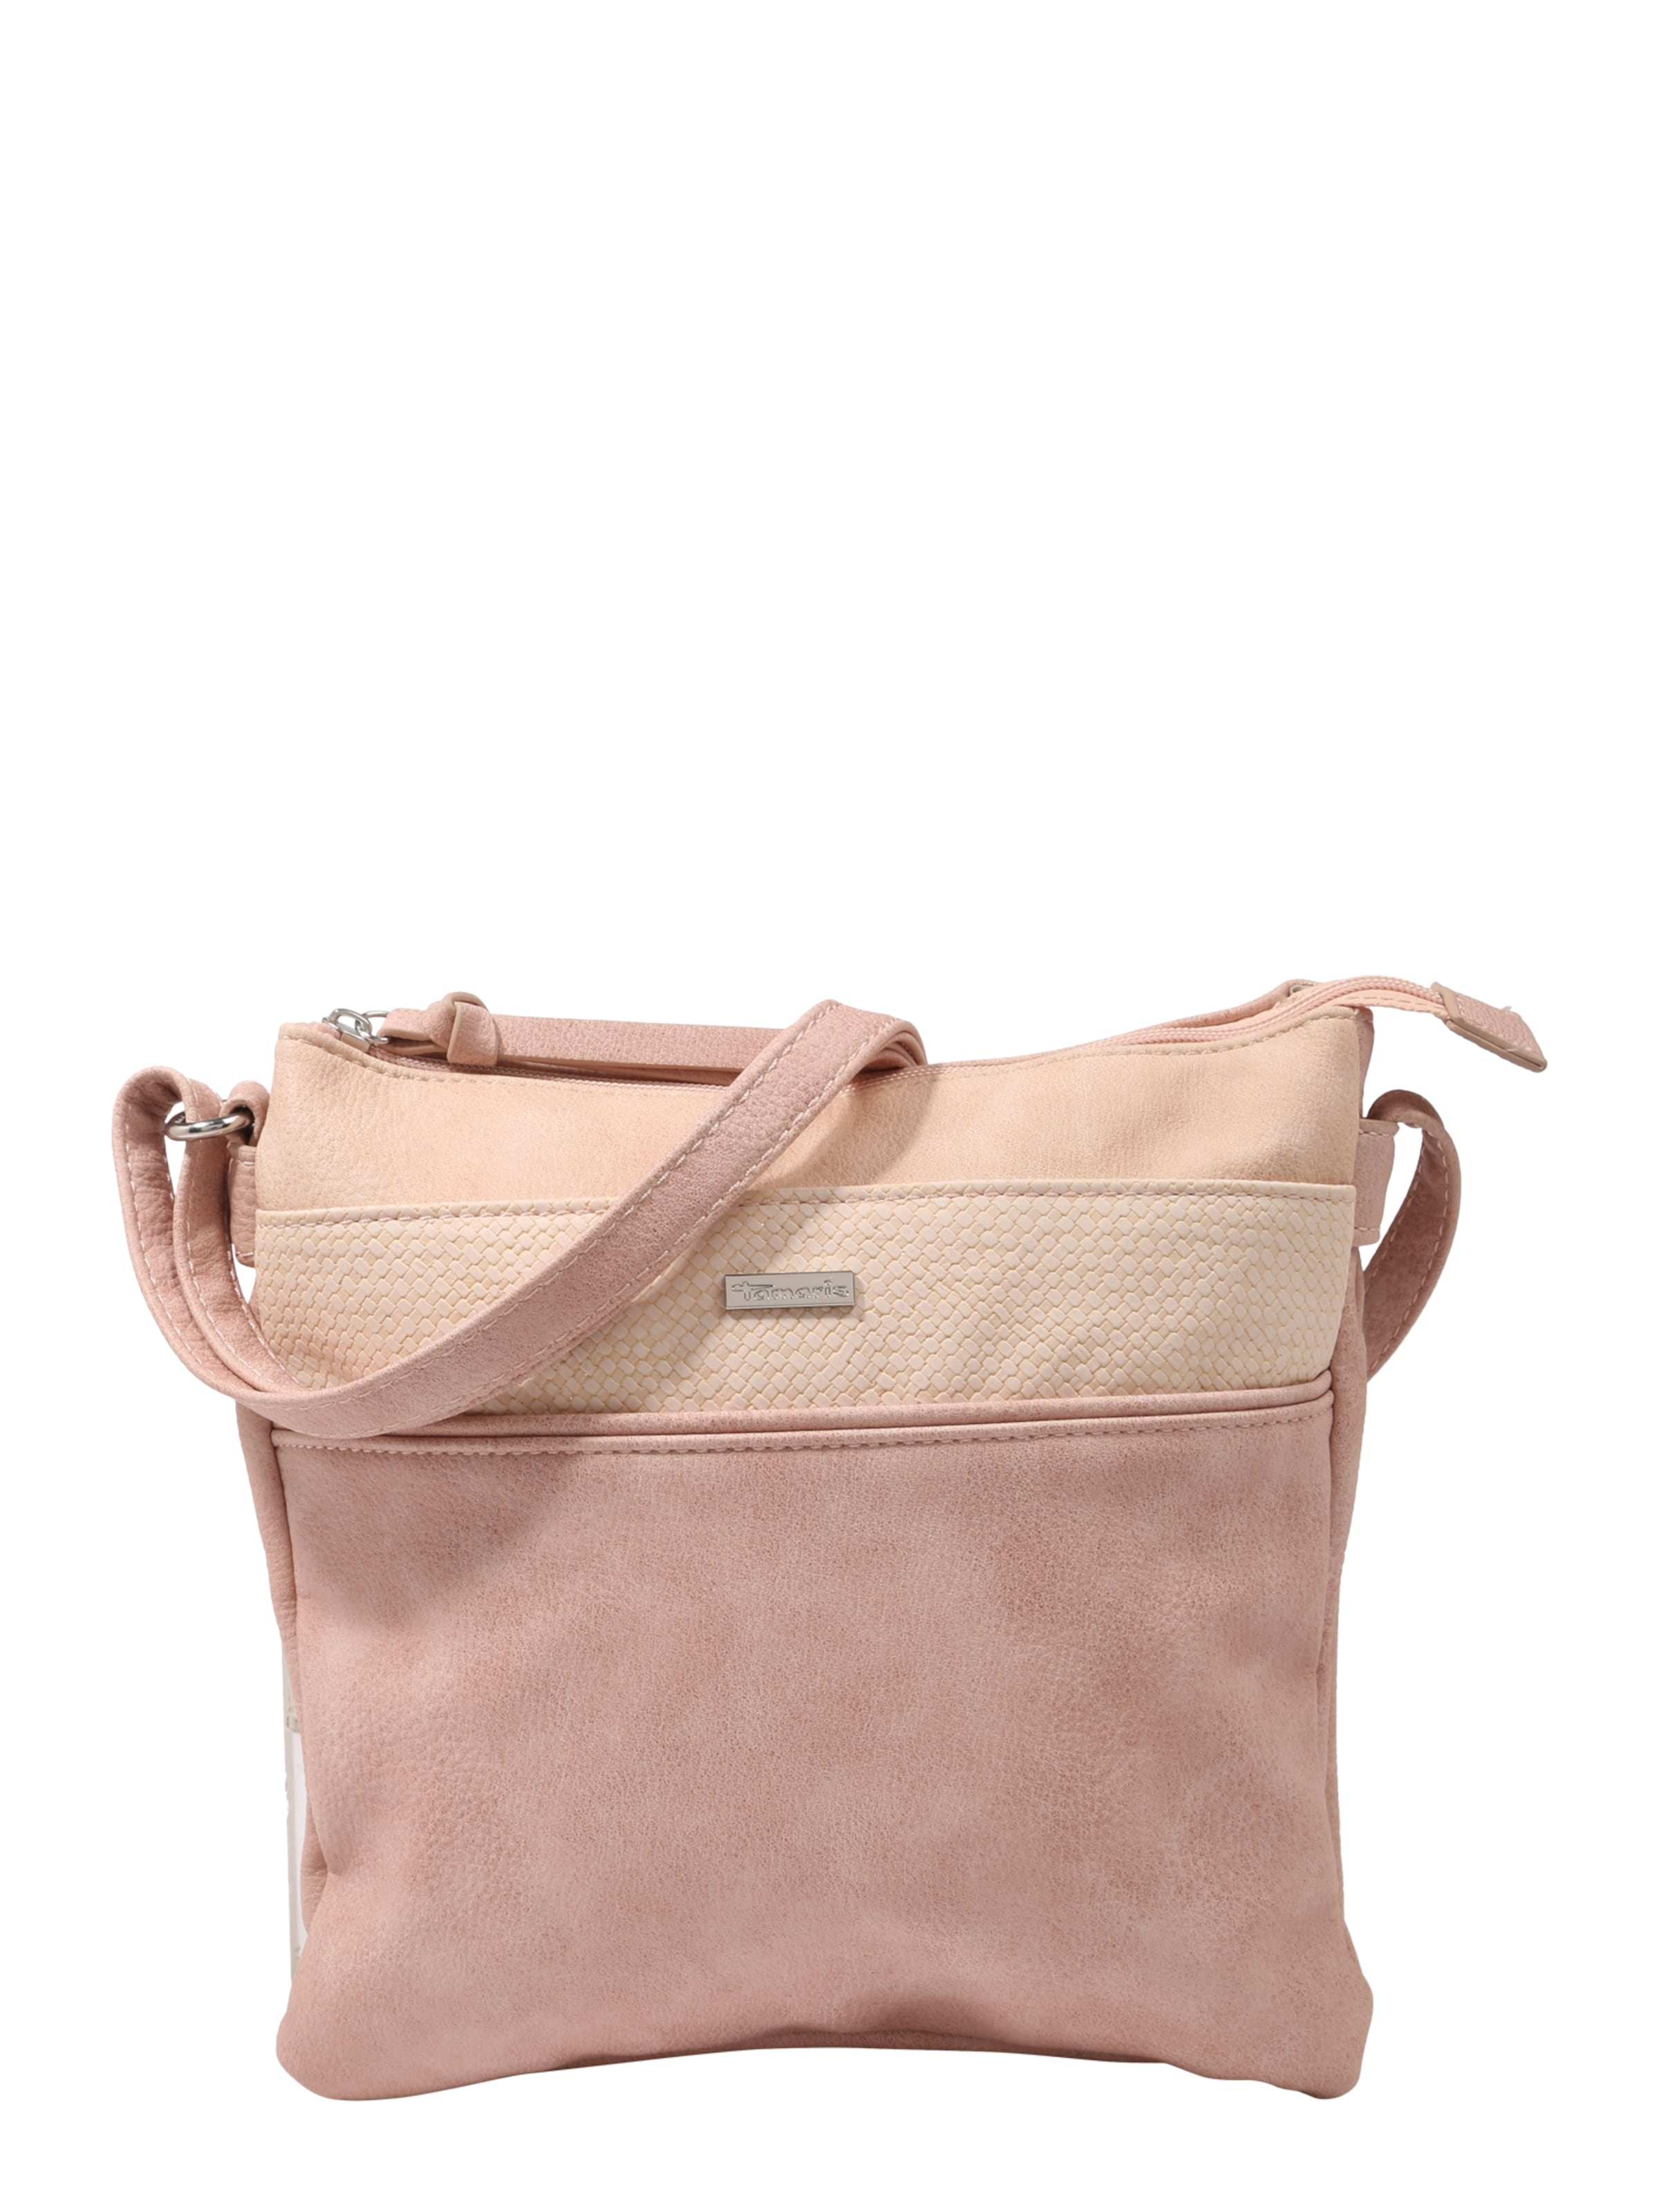 In Crossbody In Rosa 'khema' Crossbody Tamaris Crossbody Tamaris 'khema' Tamaris Rosa RLc4Aj35q